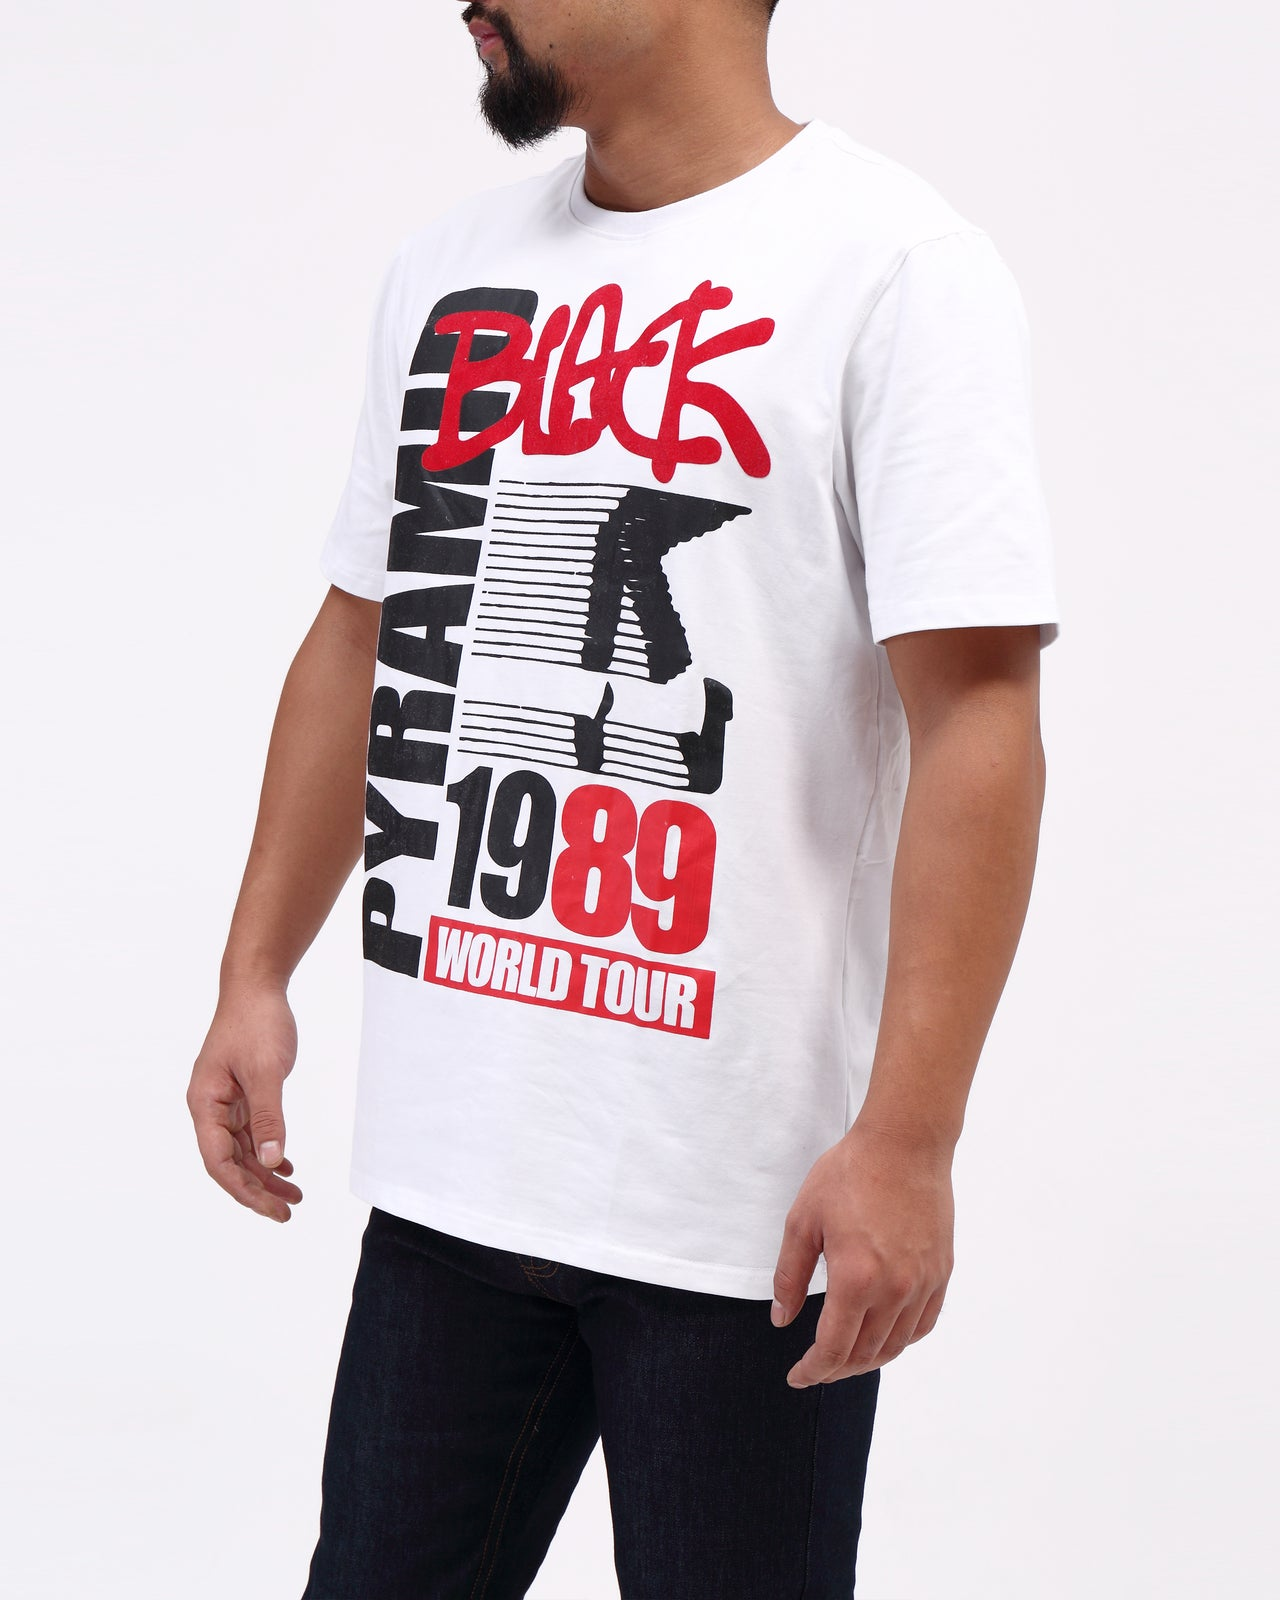 Mj Black Tee - Color: White